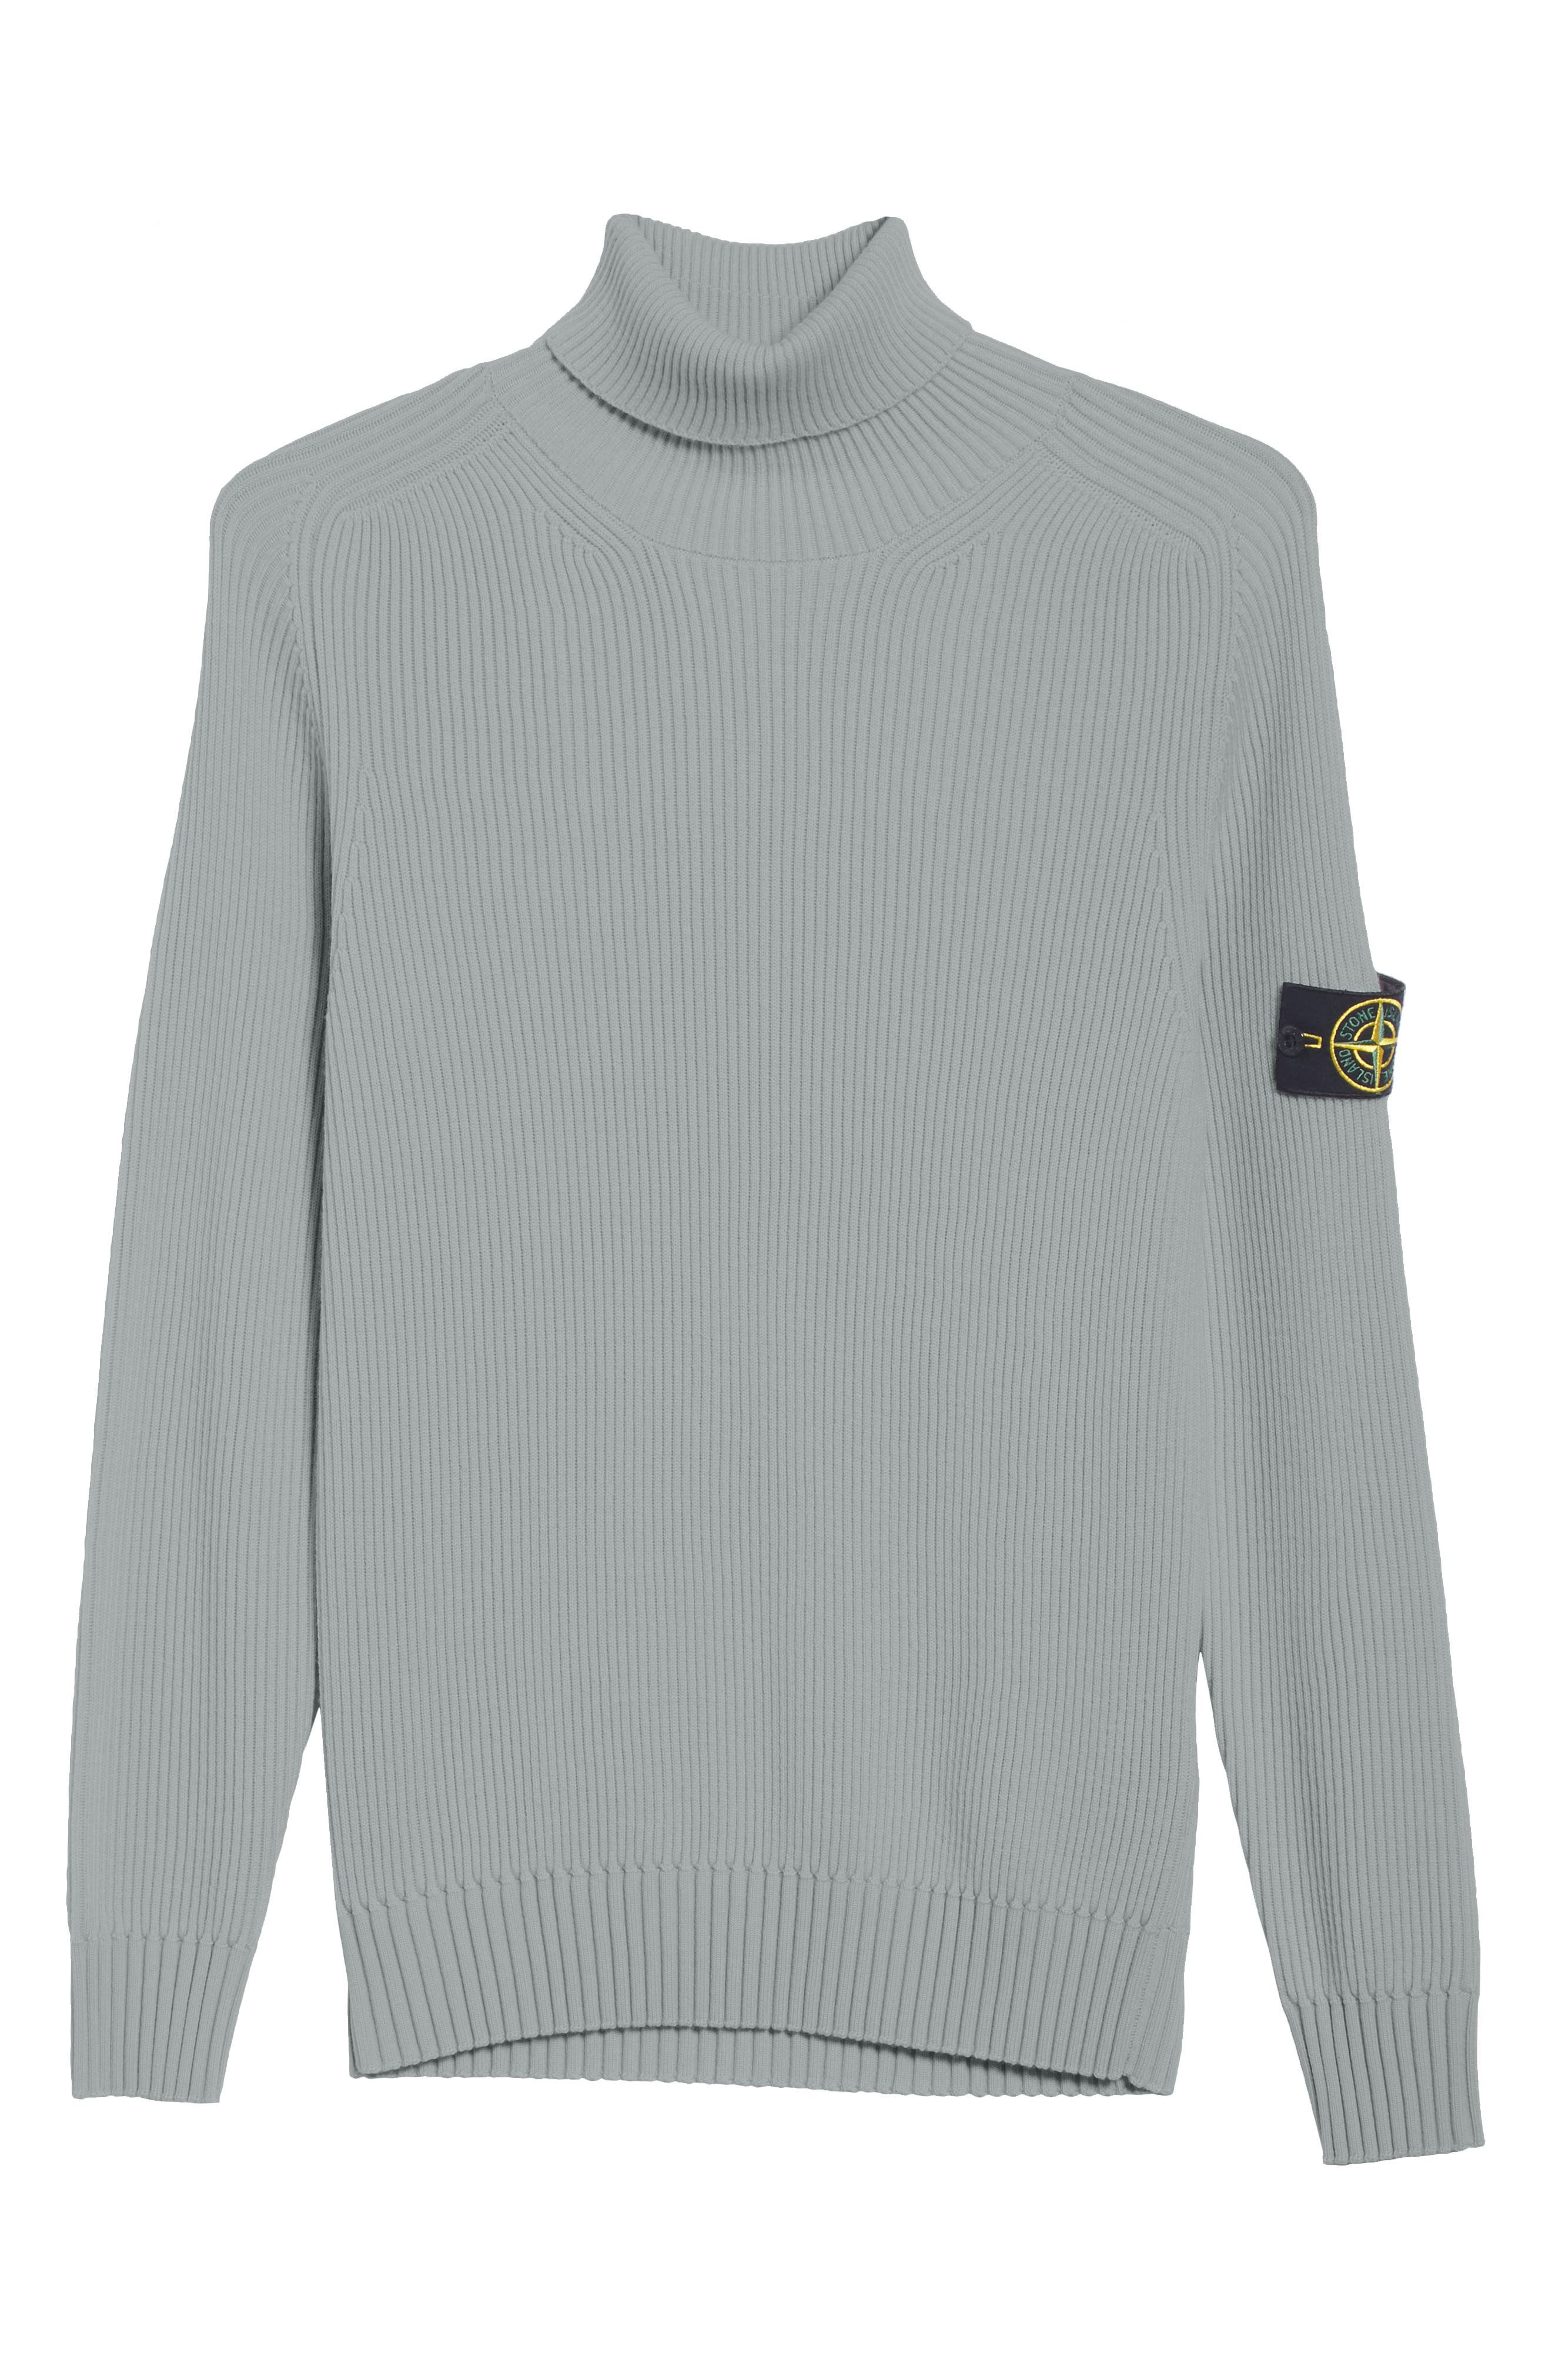 Ribbed Wool Turtleneck Sweater,                             Alternate thumbnail 6, color,                             020